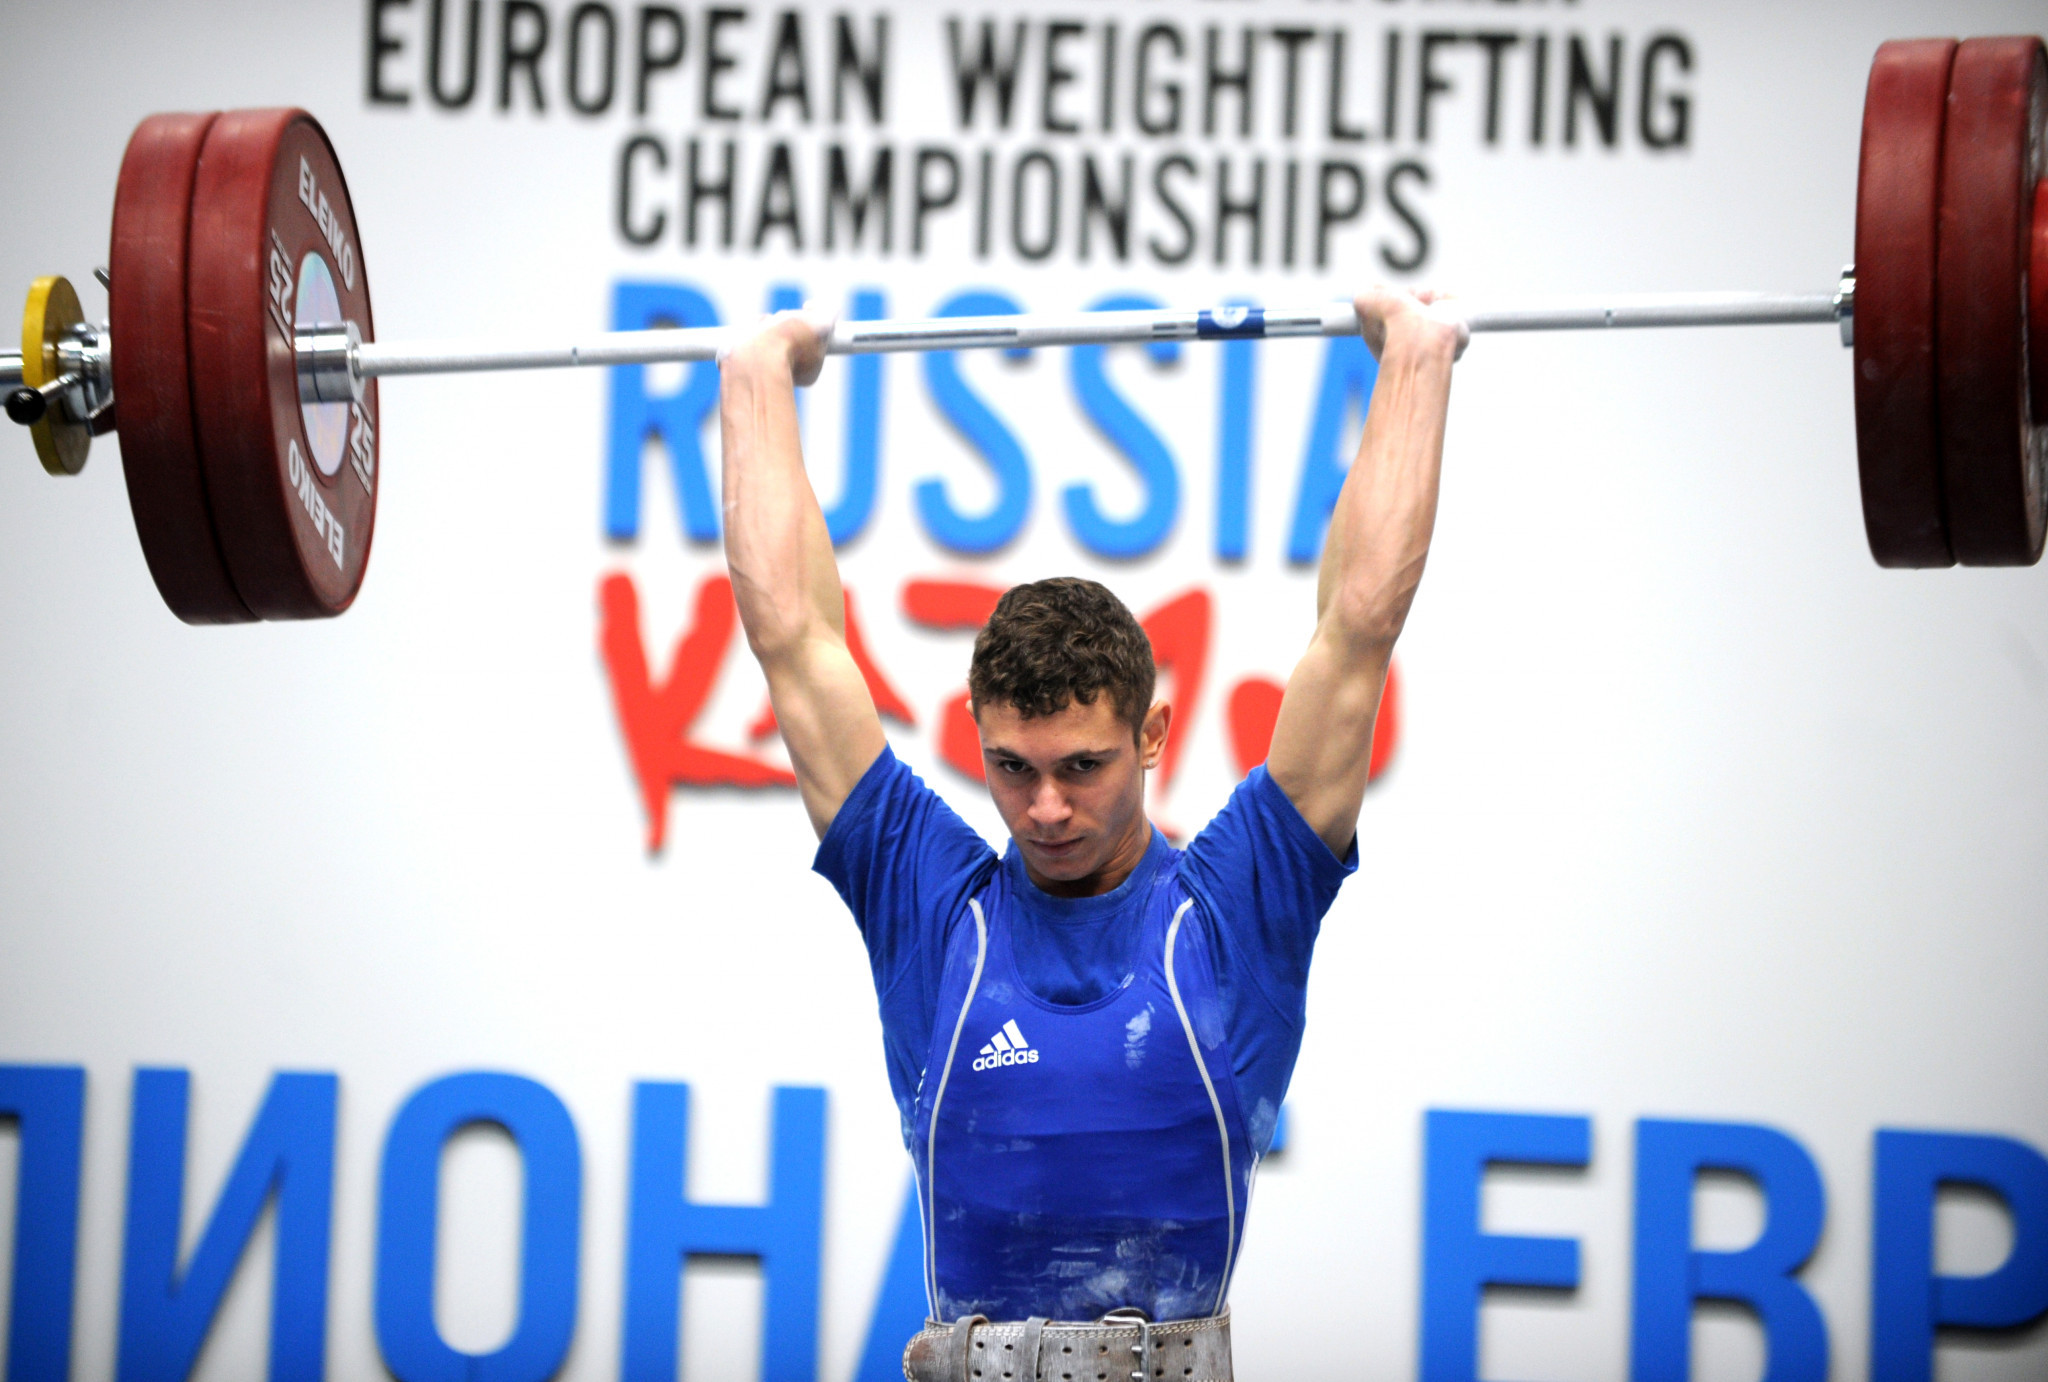 Romanian weightlifter Florin Croitoru has been disqualified from the London 2012 Olympic Games ©Getty Images